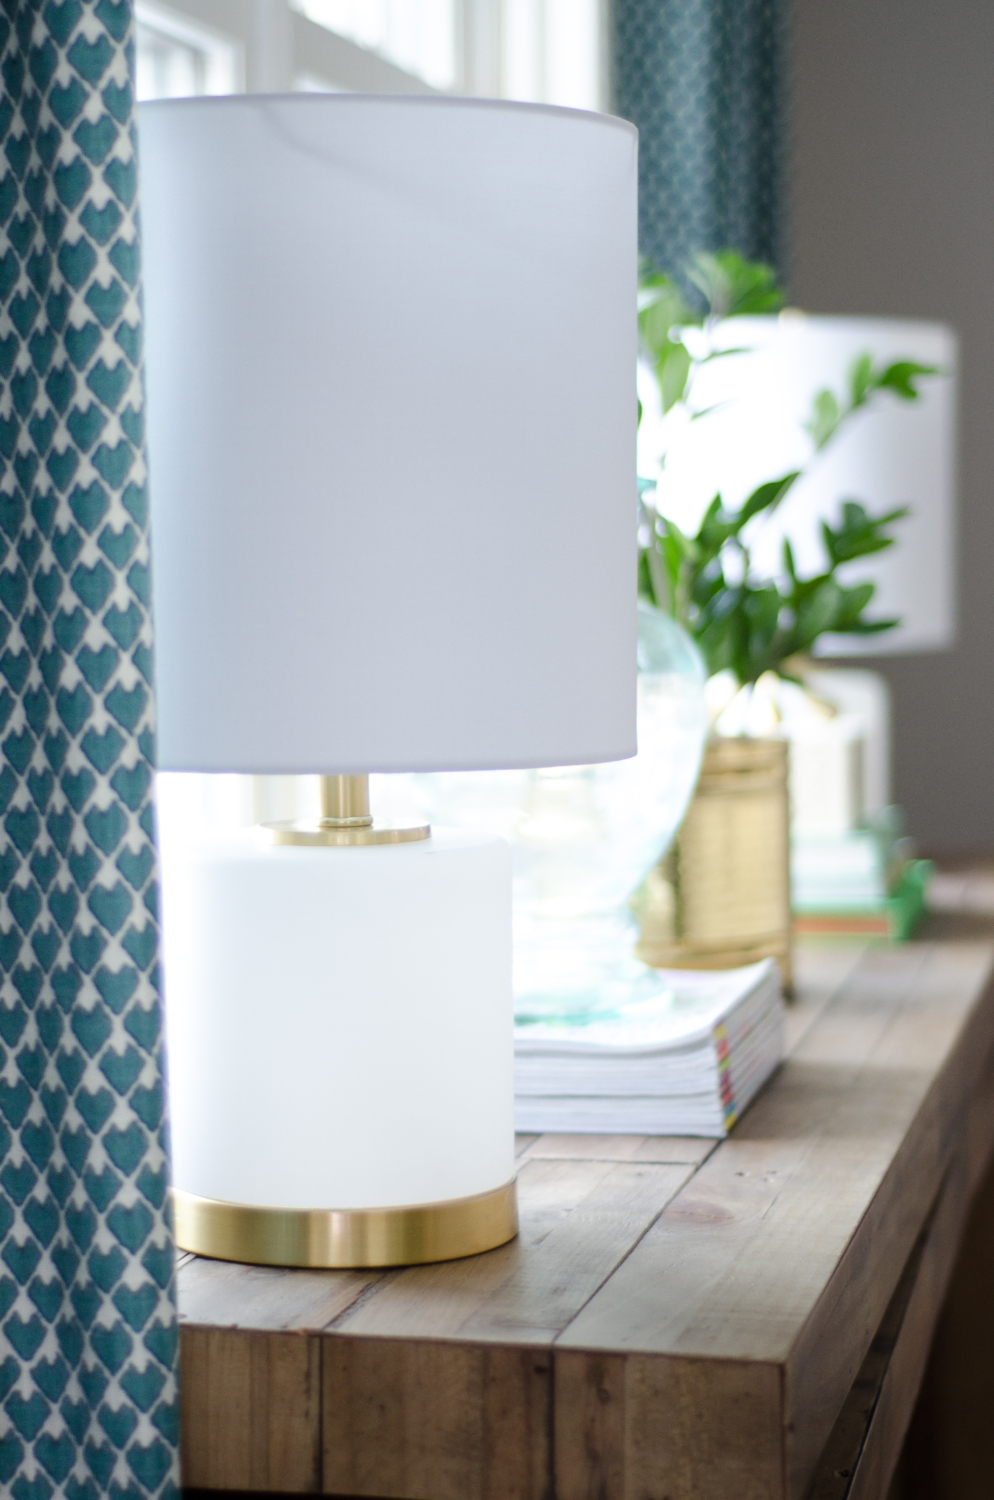 White and gold lamps